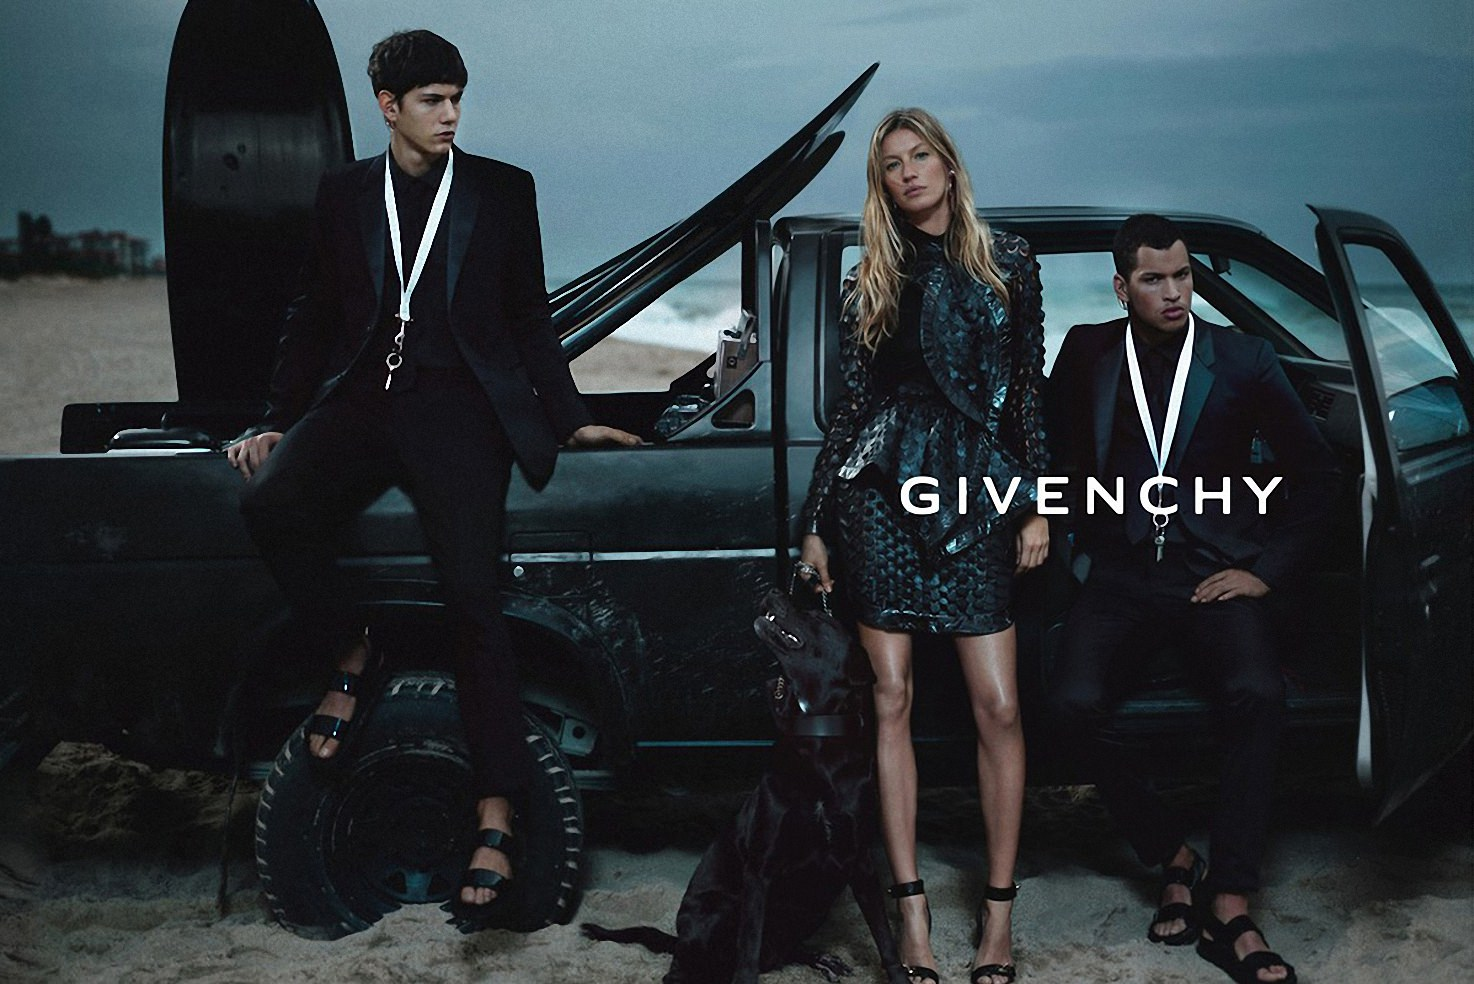 Givenchy Summer 2010 Collection